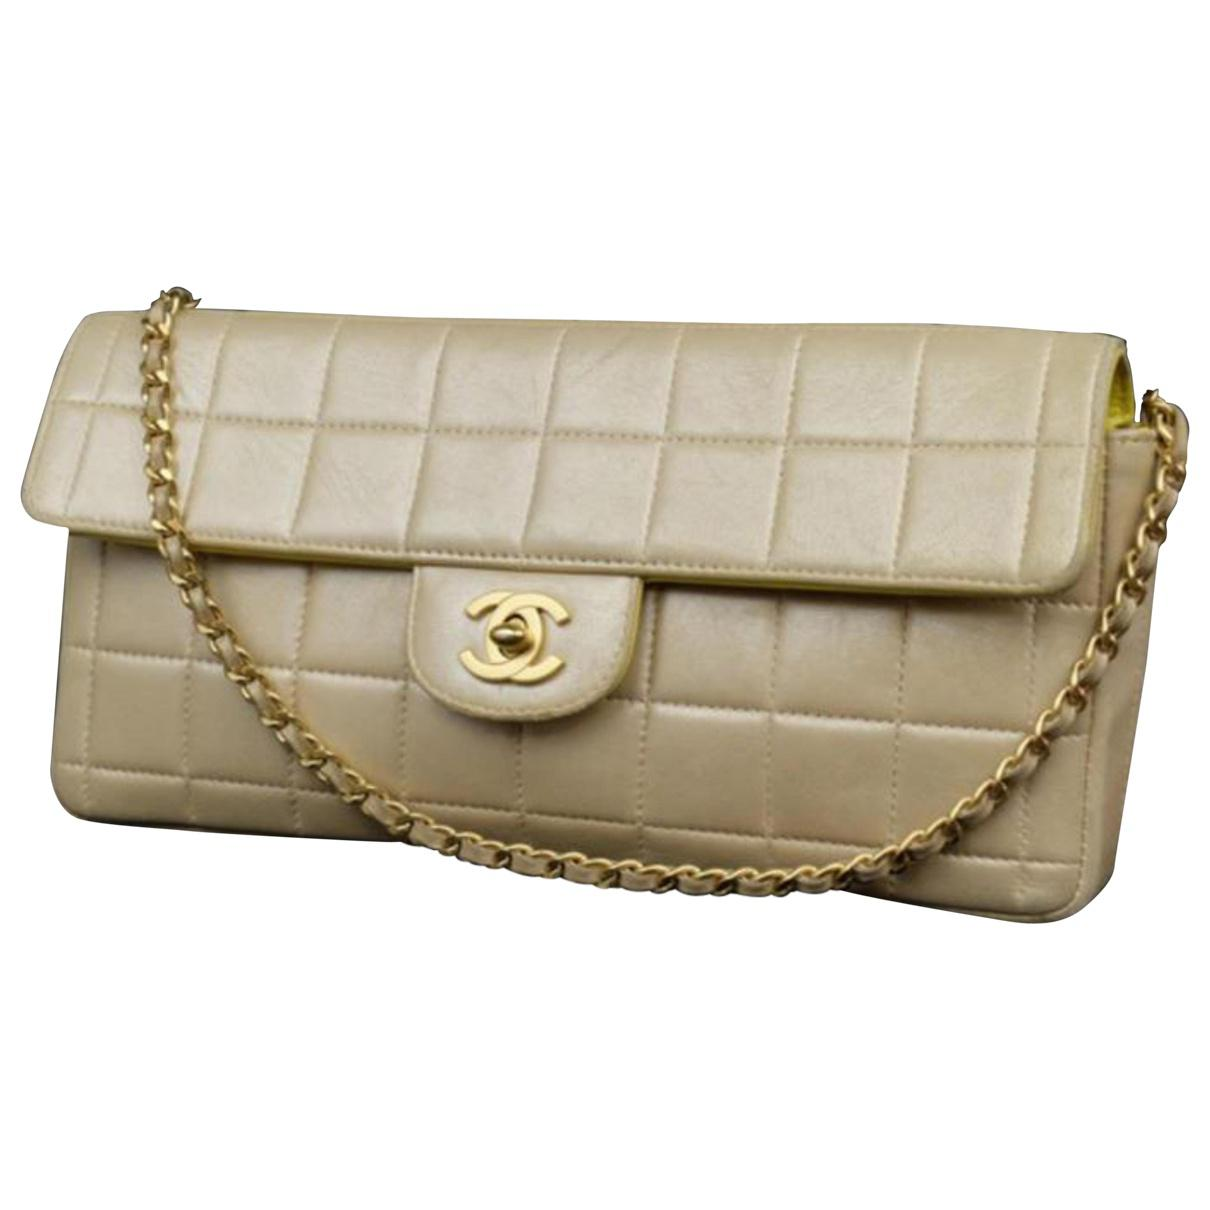 c70ead109275 Chanel. Women's Natural Pre-owned East West Chocolate Bar Leather Handbag